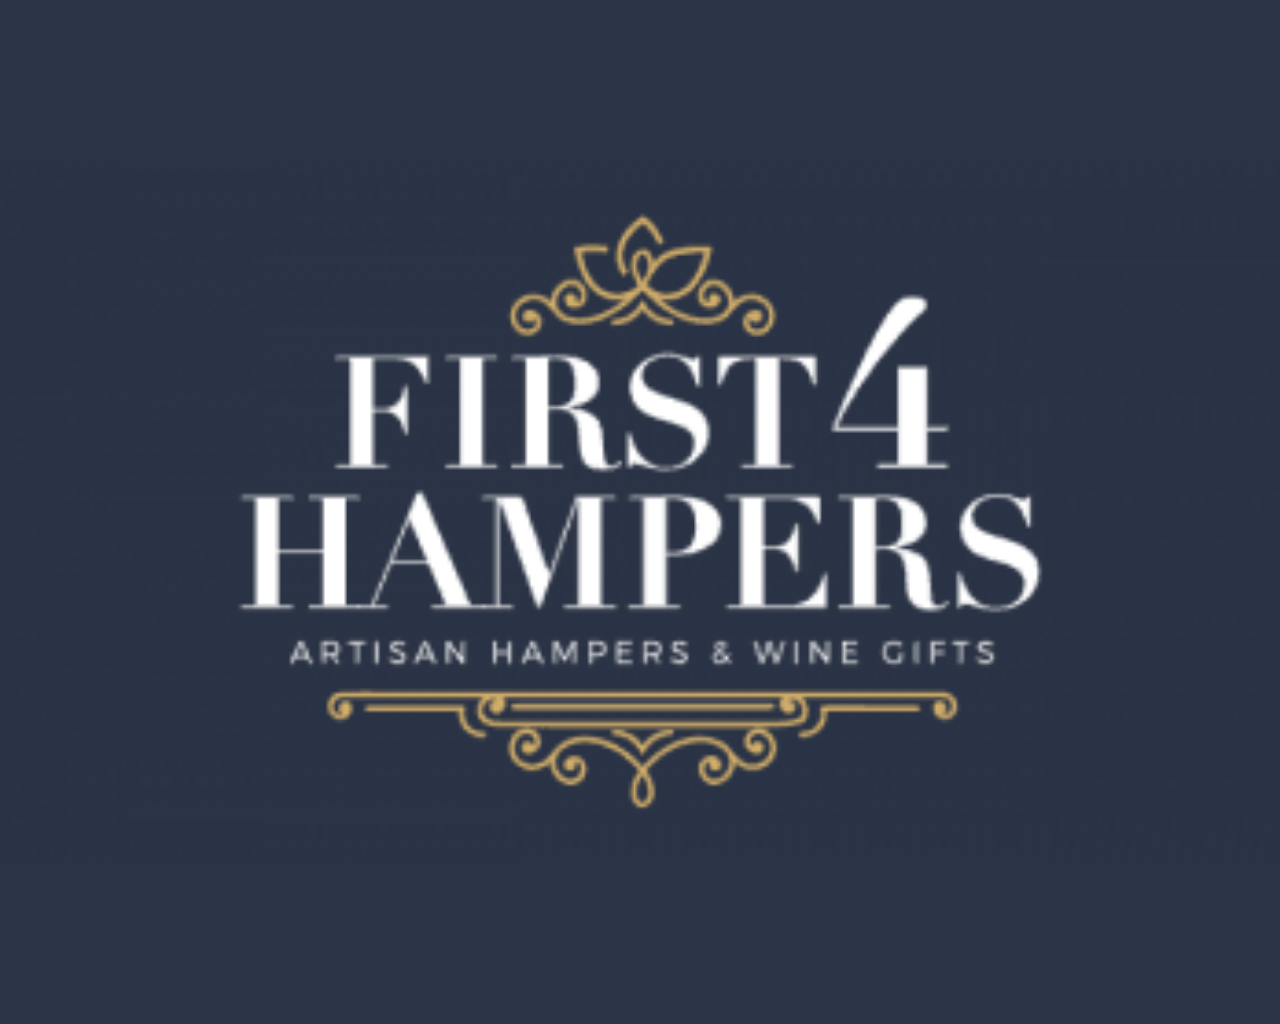 FIRST4HAMPERS - Specially designed labels are available on a selection of our wines can be purchased on artisan hampers and wine gift retailers, First4Hampers